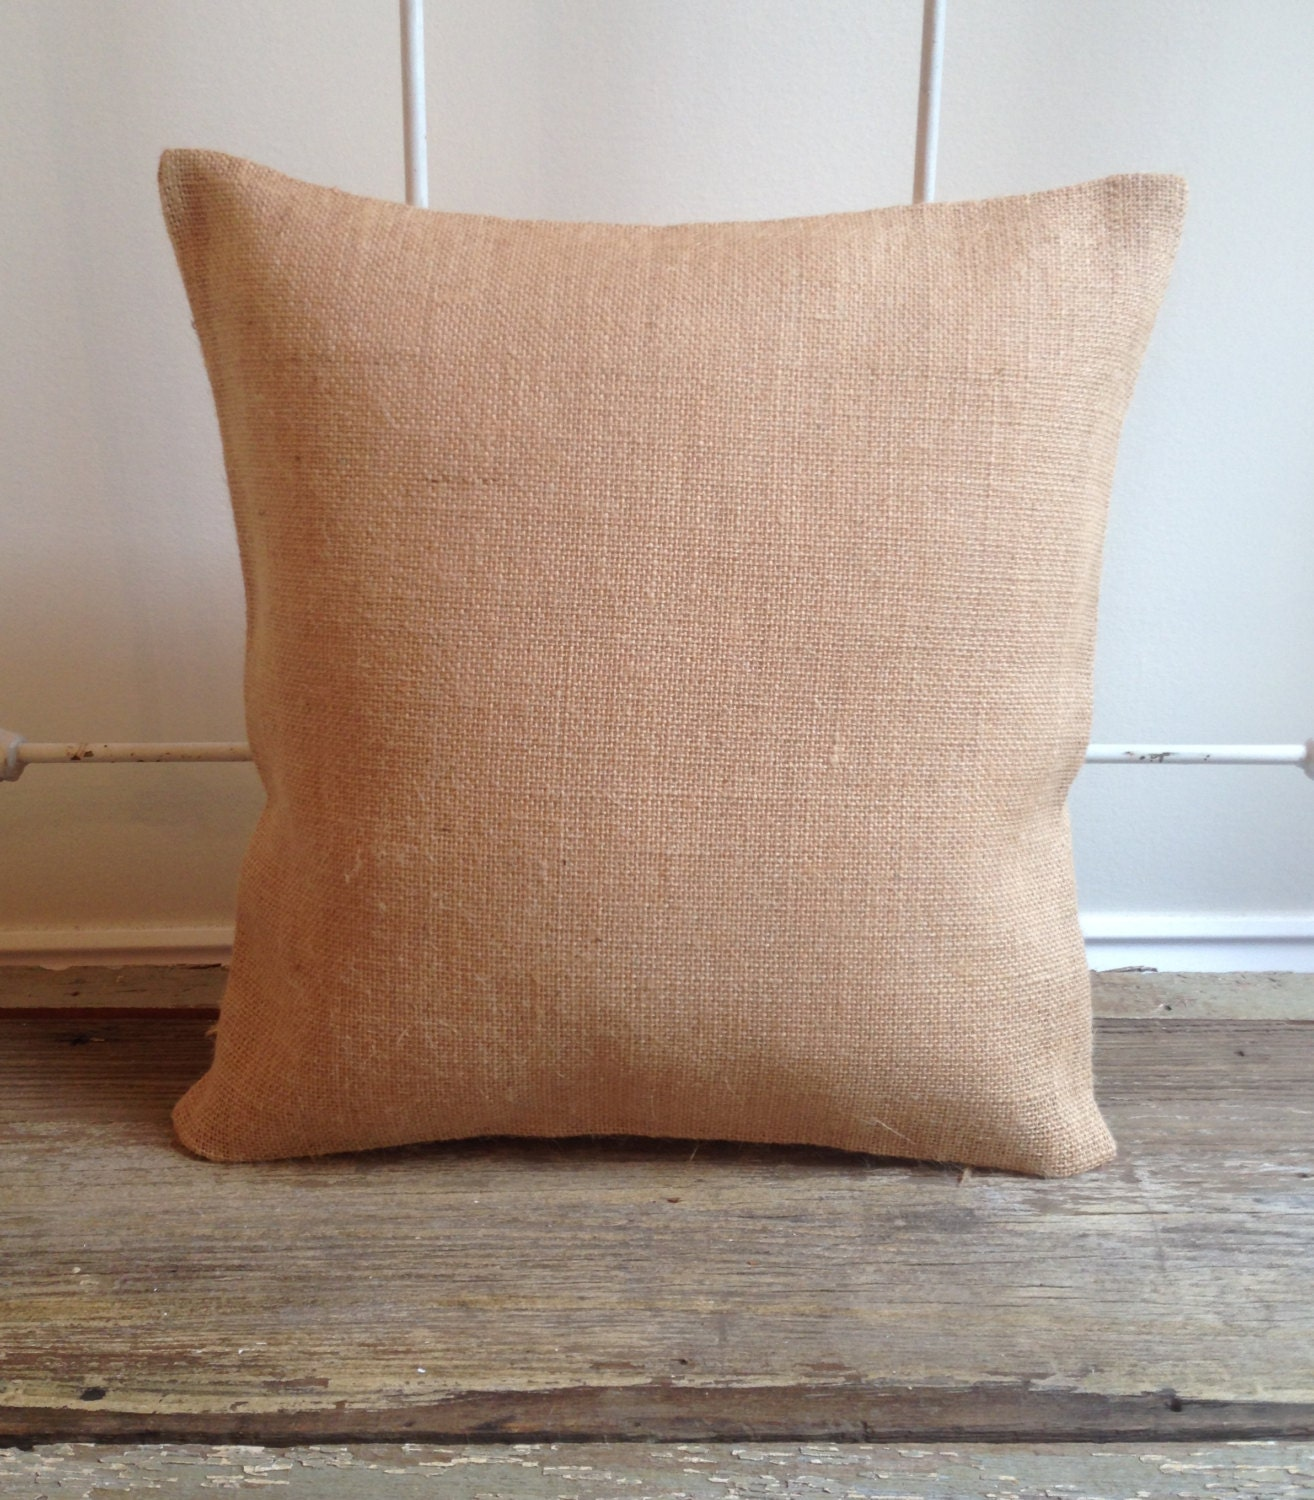 Blank Decorative Pillow Covers : Burlap Pillow Cover - blank cover only - Natural Burlap, White Burlap, Cotton Canvas Pillow ...